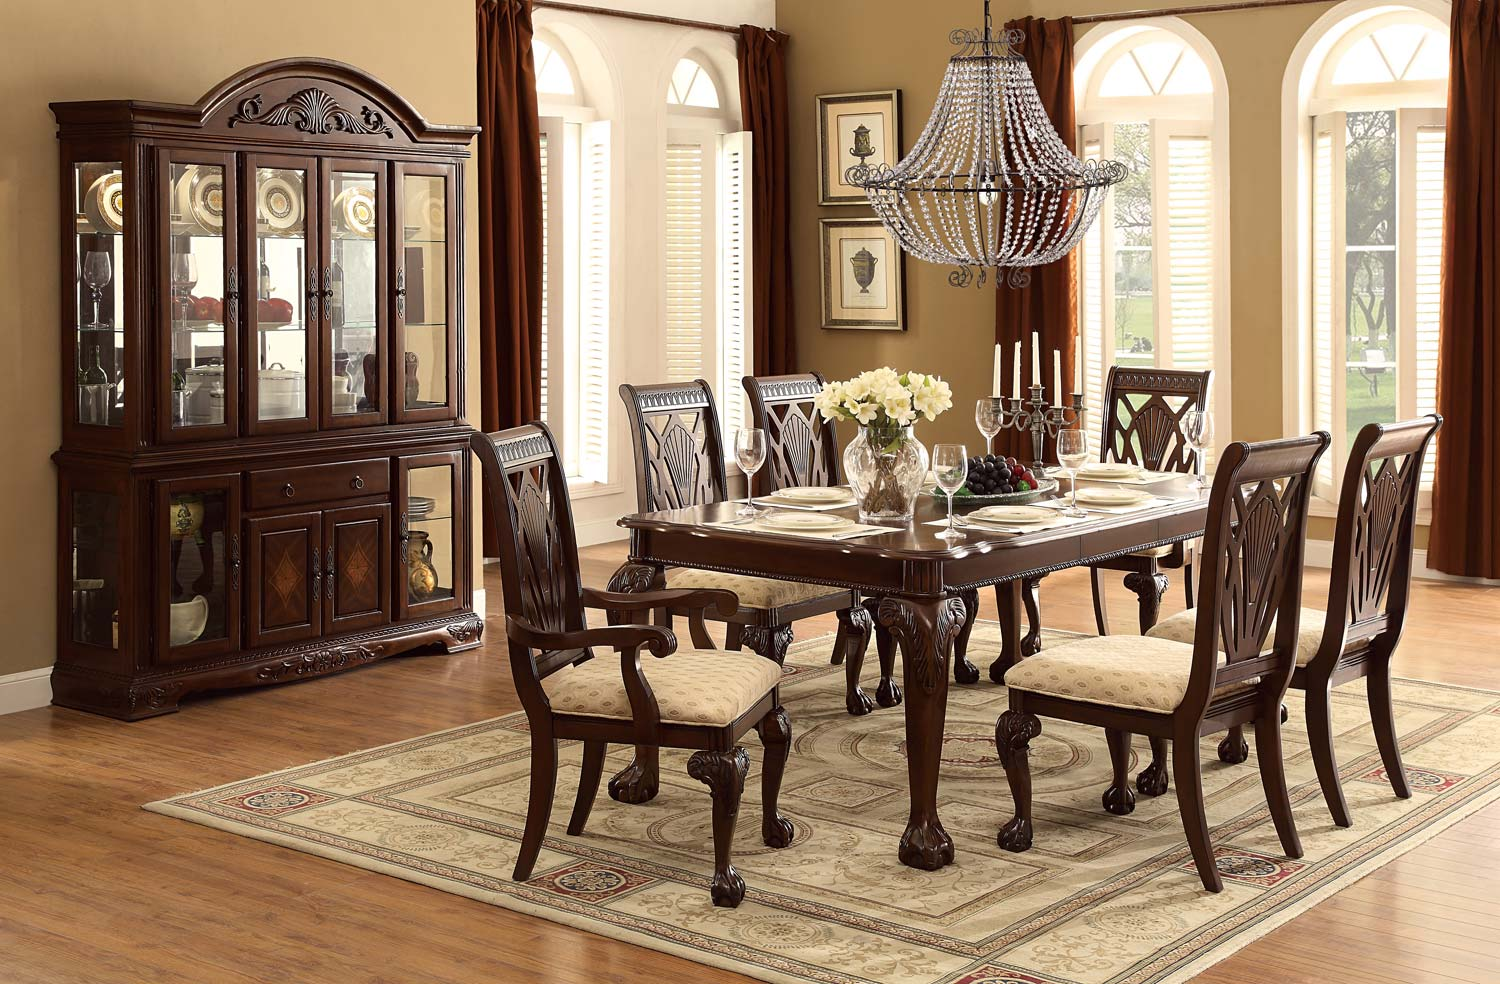 Homelegance Norwich Leg Dining Table Set - Beige Fabric - Warm Cherry